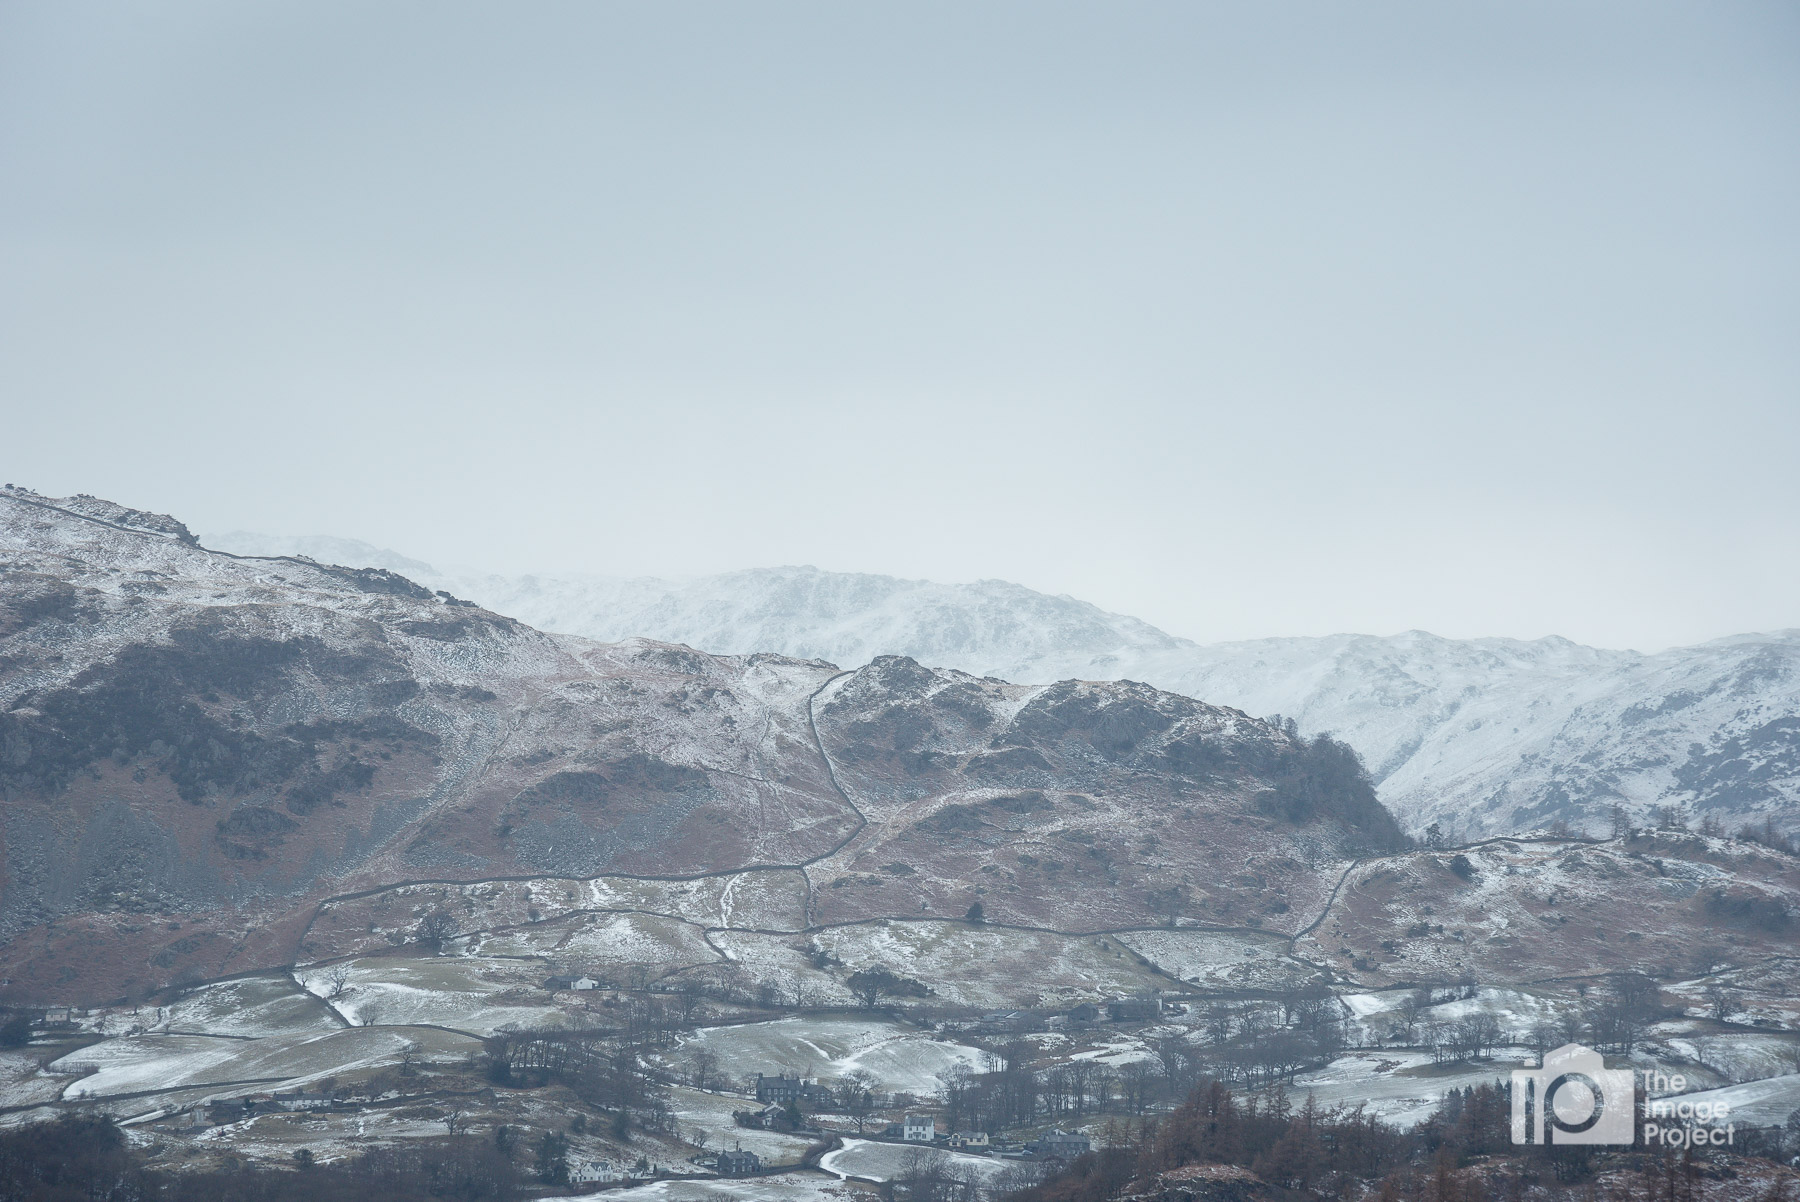 The morning after the snowfall - patchy cover among the low fells of the Lake District, March 2018